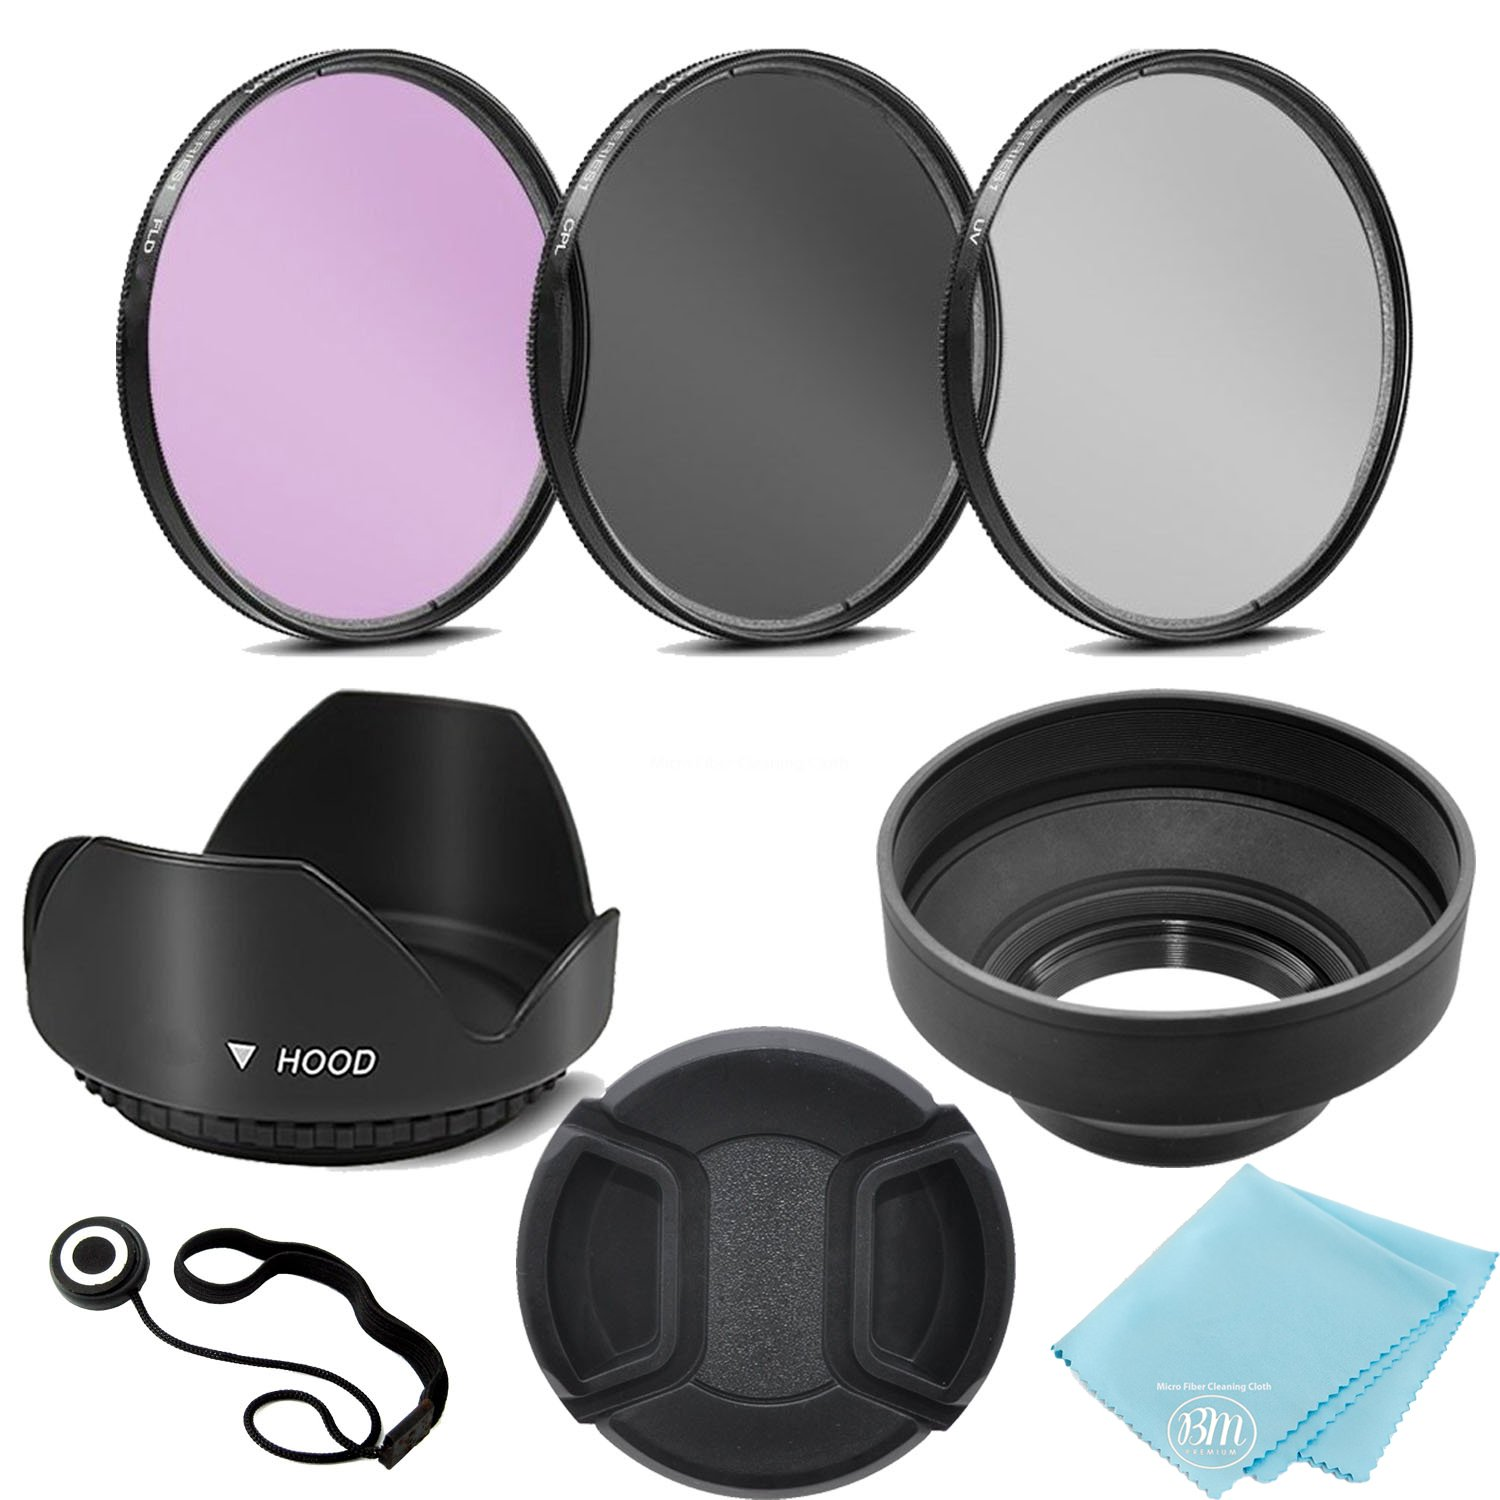 58mm 3 Piece Filter Kit (UV-CPL-FLD) + 58mm Tulip Lens Hood + 58mm Soft Rubber Hood + 58mm Lens Cap + for Select Canon, Nikon, Sony, Olympus, Panasonic, Fuji, Sigma SLR Lenses, Cameras and Camcorders by Big Mike's